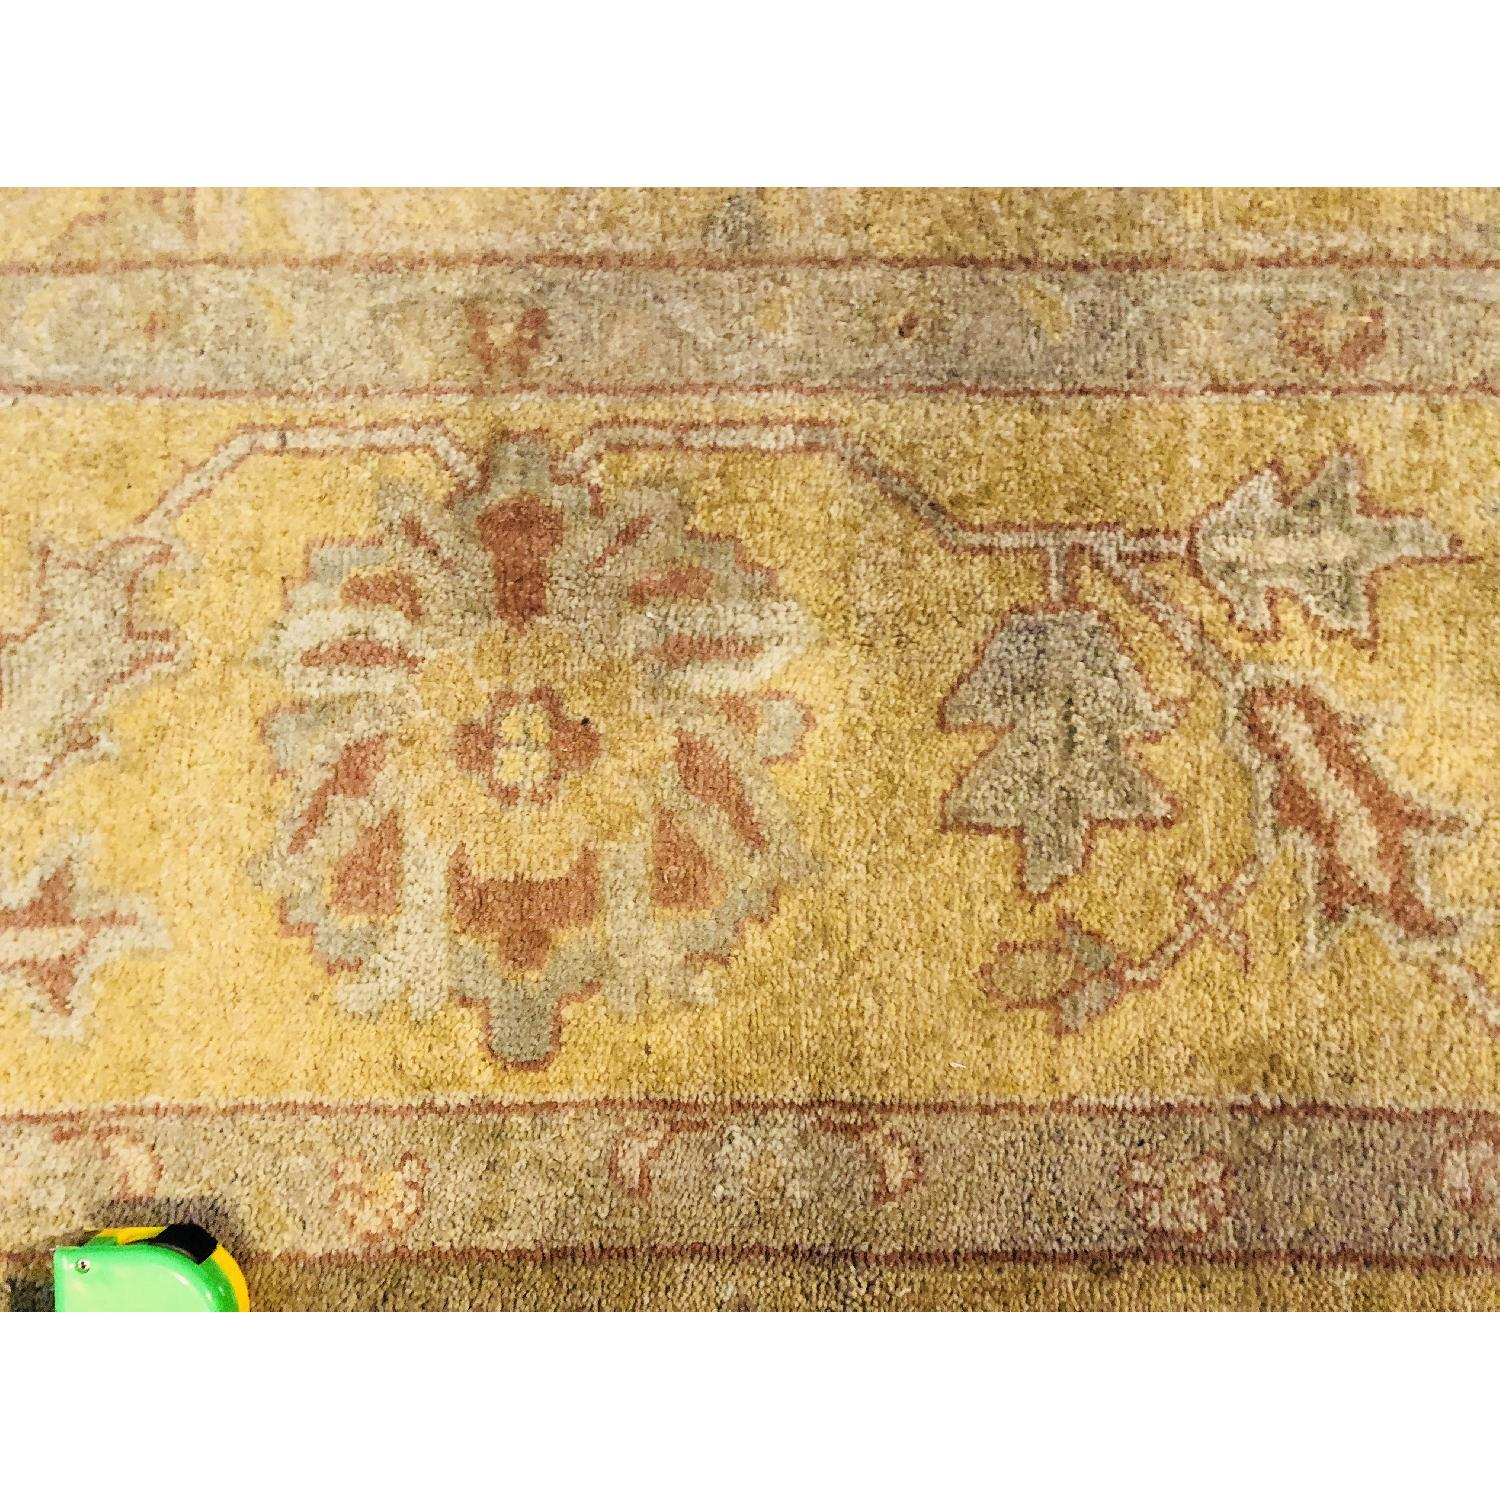 ABC Carpet and Home Beetie Classio Yellow Oriental Carpet - image-7